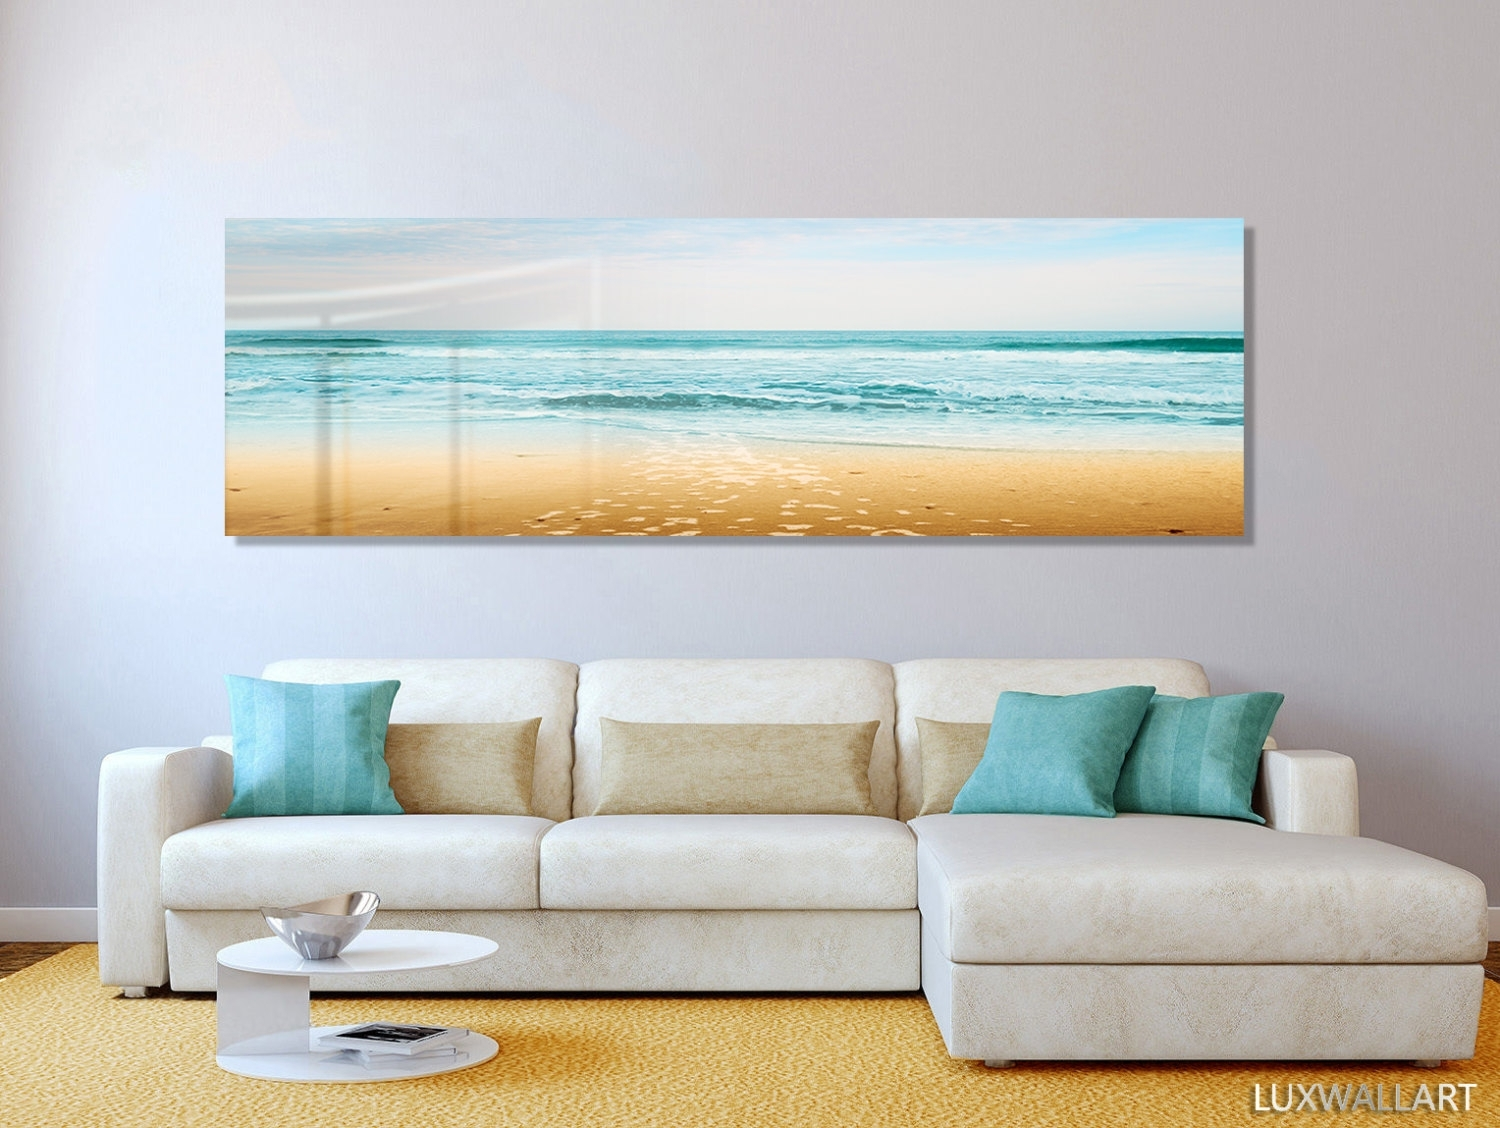 Turquoise Beach Ocean Panoramic Modern Contemporary Hd Metal Inside Most Up To Date Panoramic Wall Art (View 13 of 15)